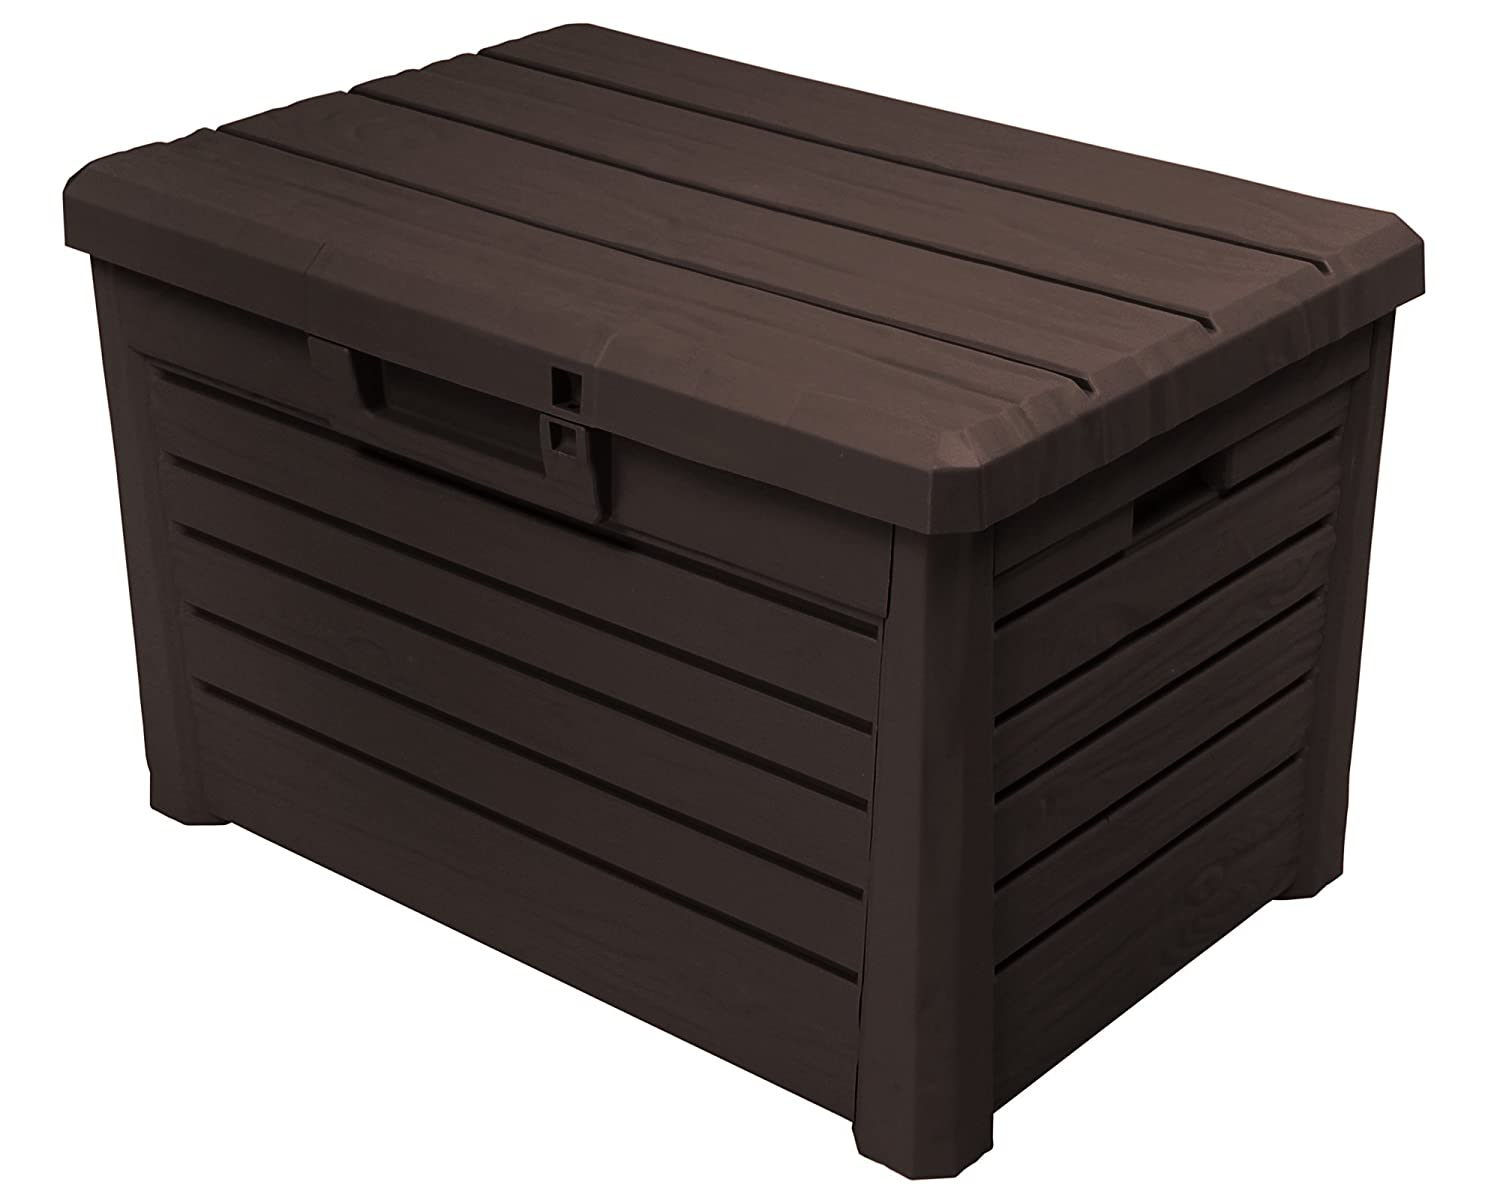 kissenbox florida holz optik sitztruhe auflagenbox poolbox. Black Bedroom Furniture Sets. Home Design Ideas